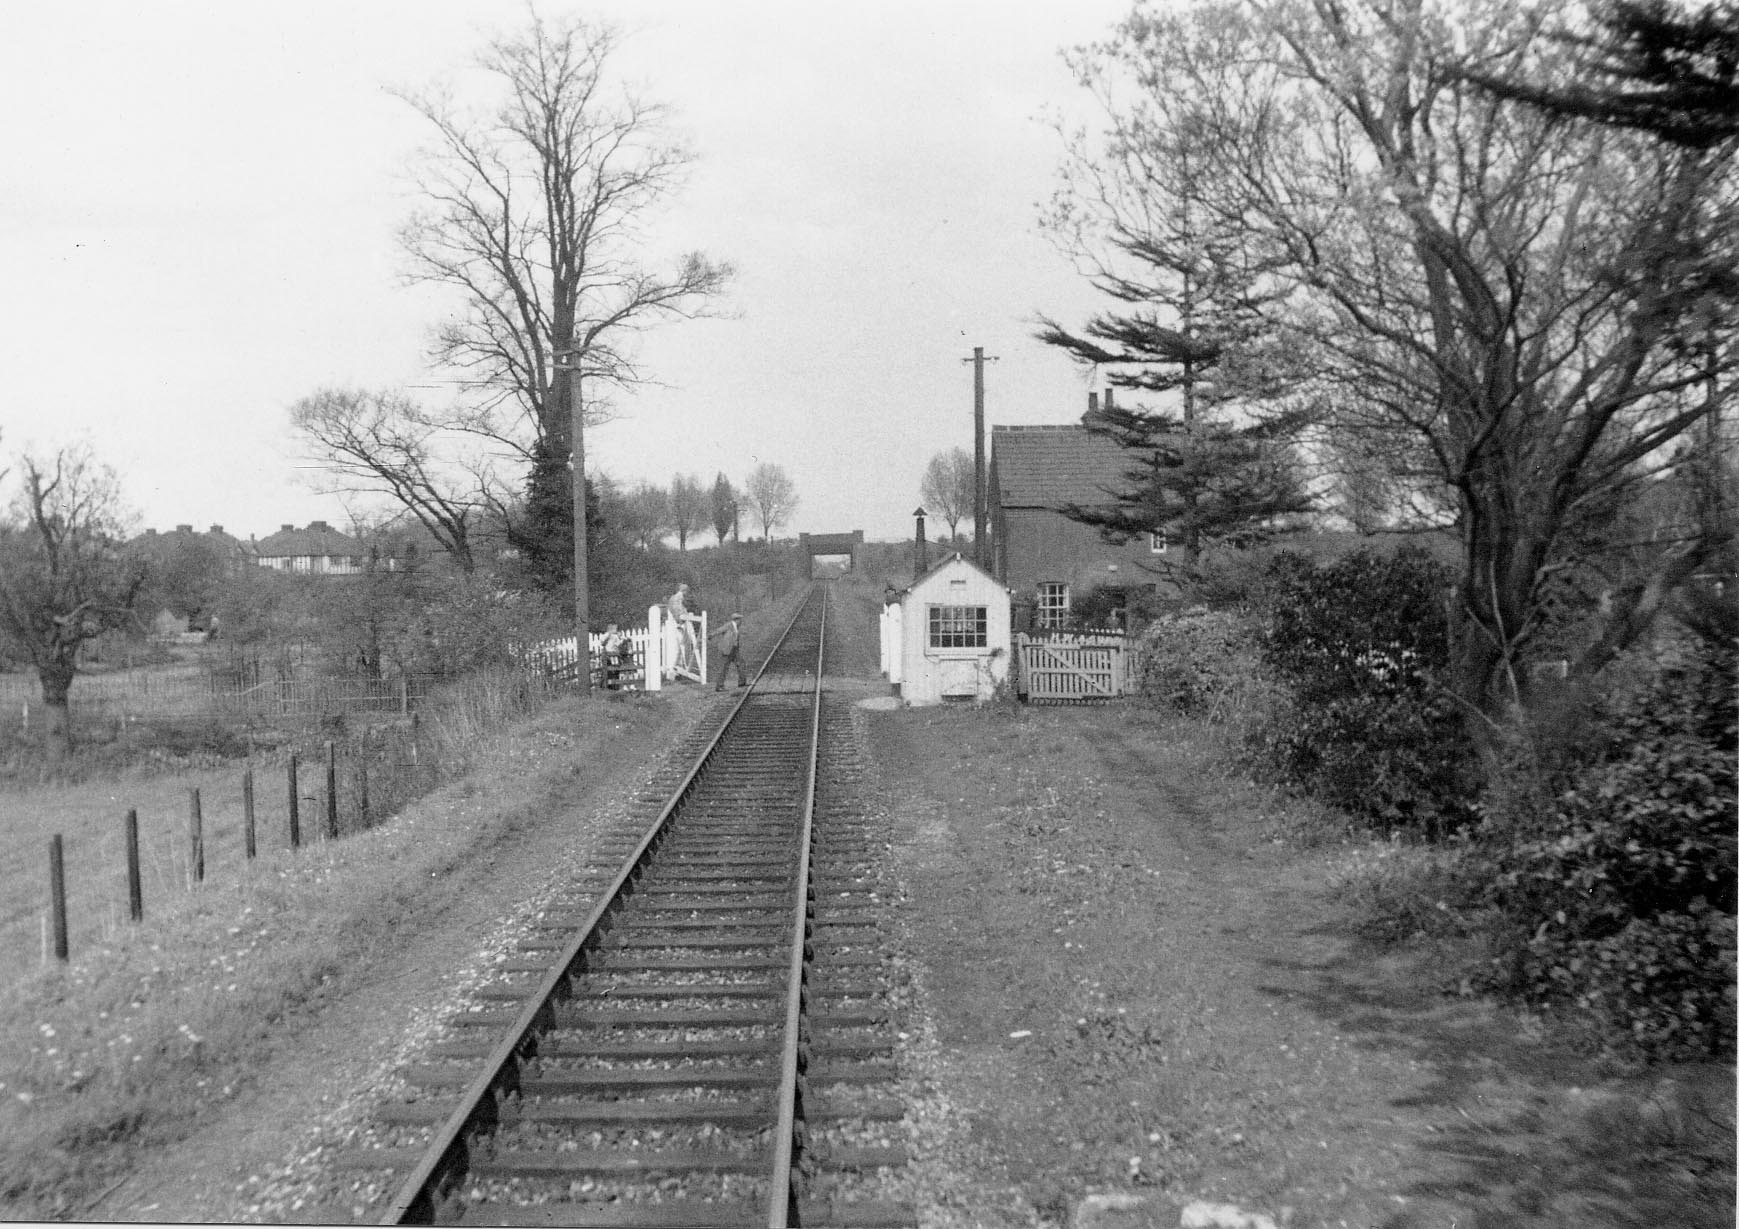 Nast Hyde Halt and Ellenbrook Level Crossing 009